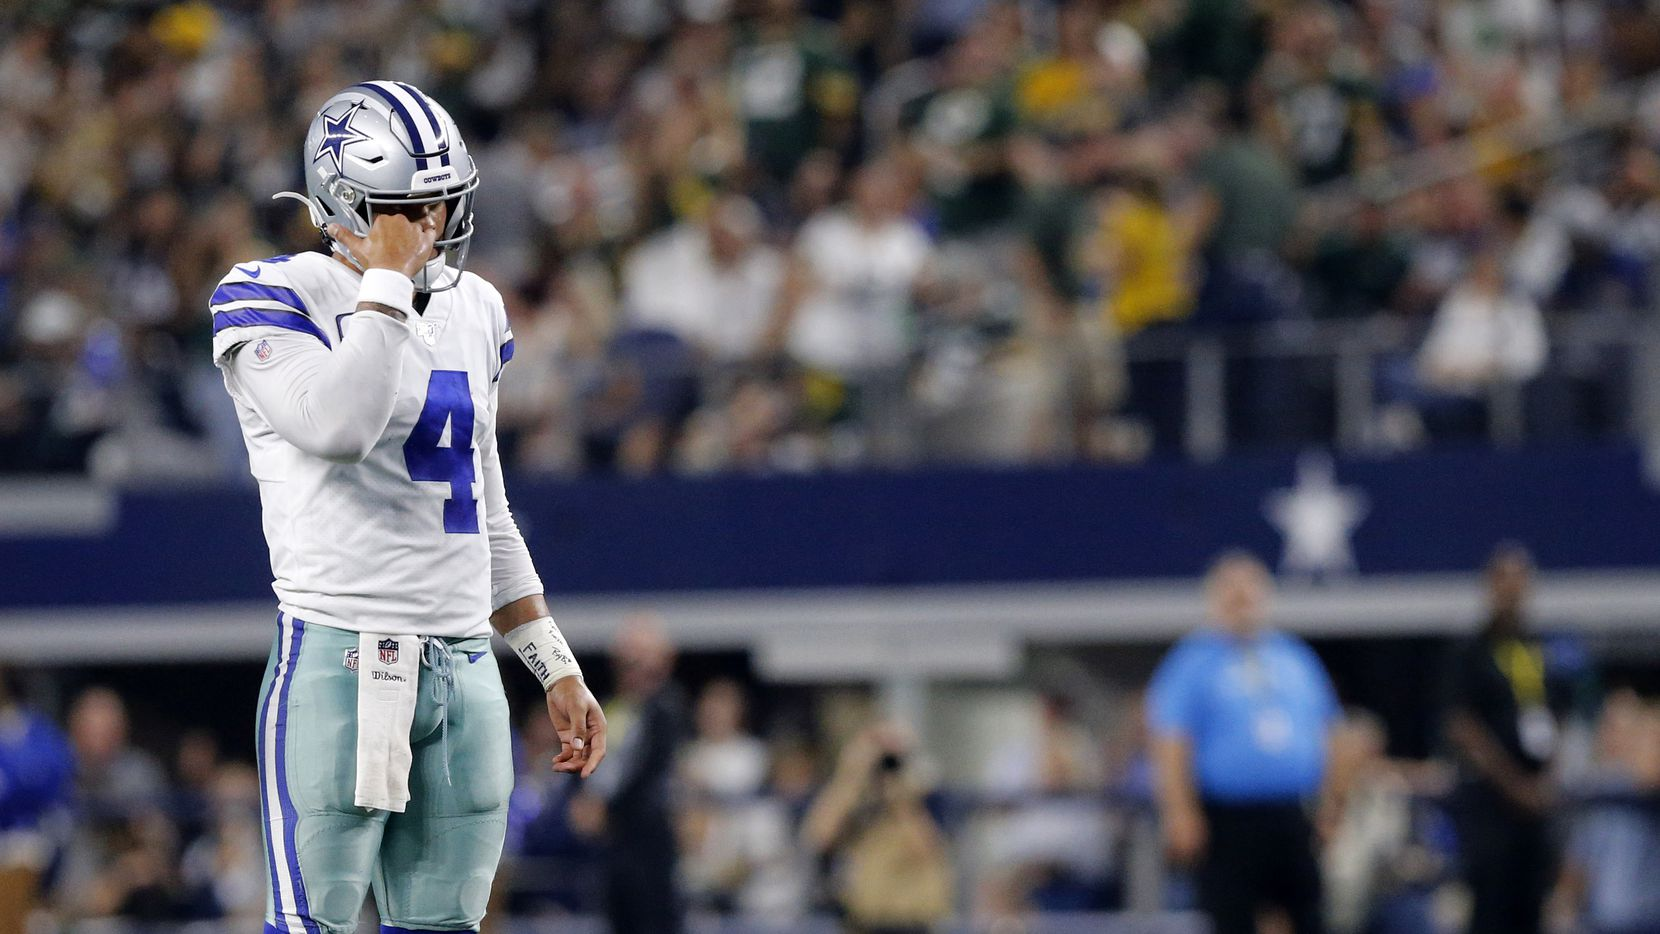 Dallas Cowboys quarterback Dak Prescott (4) waits for officials to sort out a penalty flag against the Cowboys against the Green Bay Packers at AT&T Stadium in Arlington, Texas, Sunday, October 6, 2019.